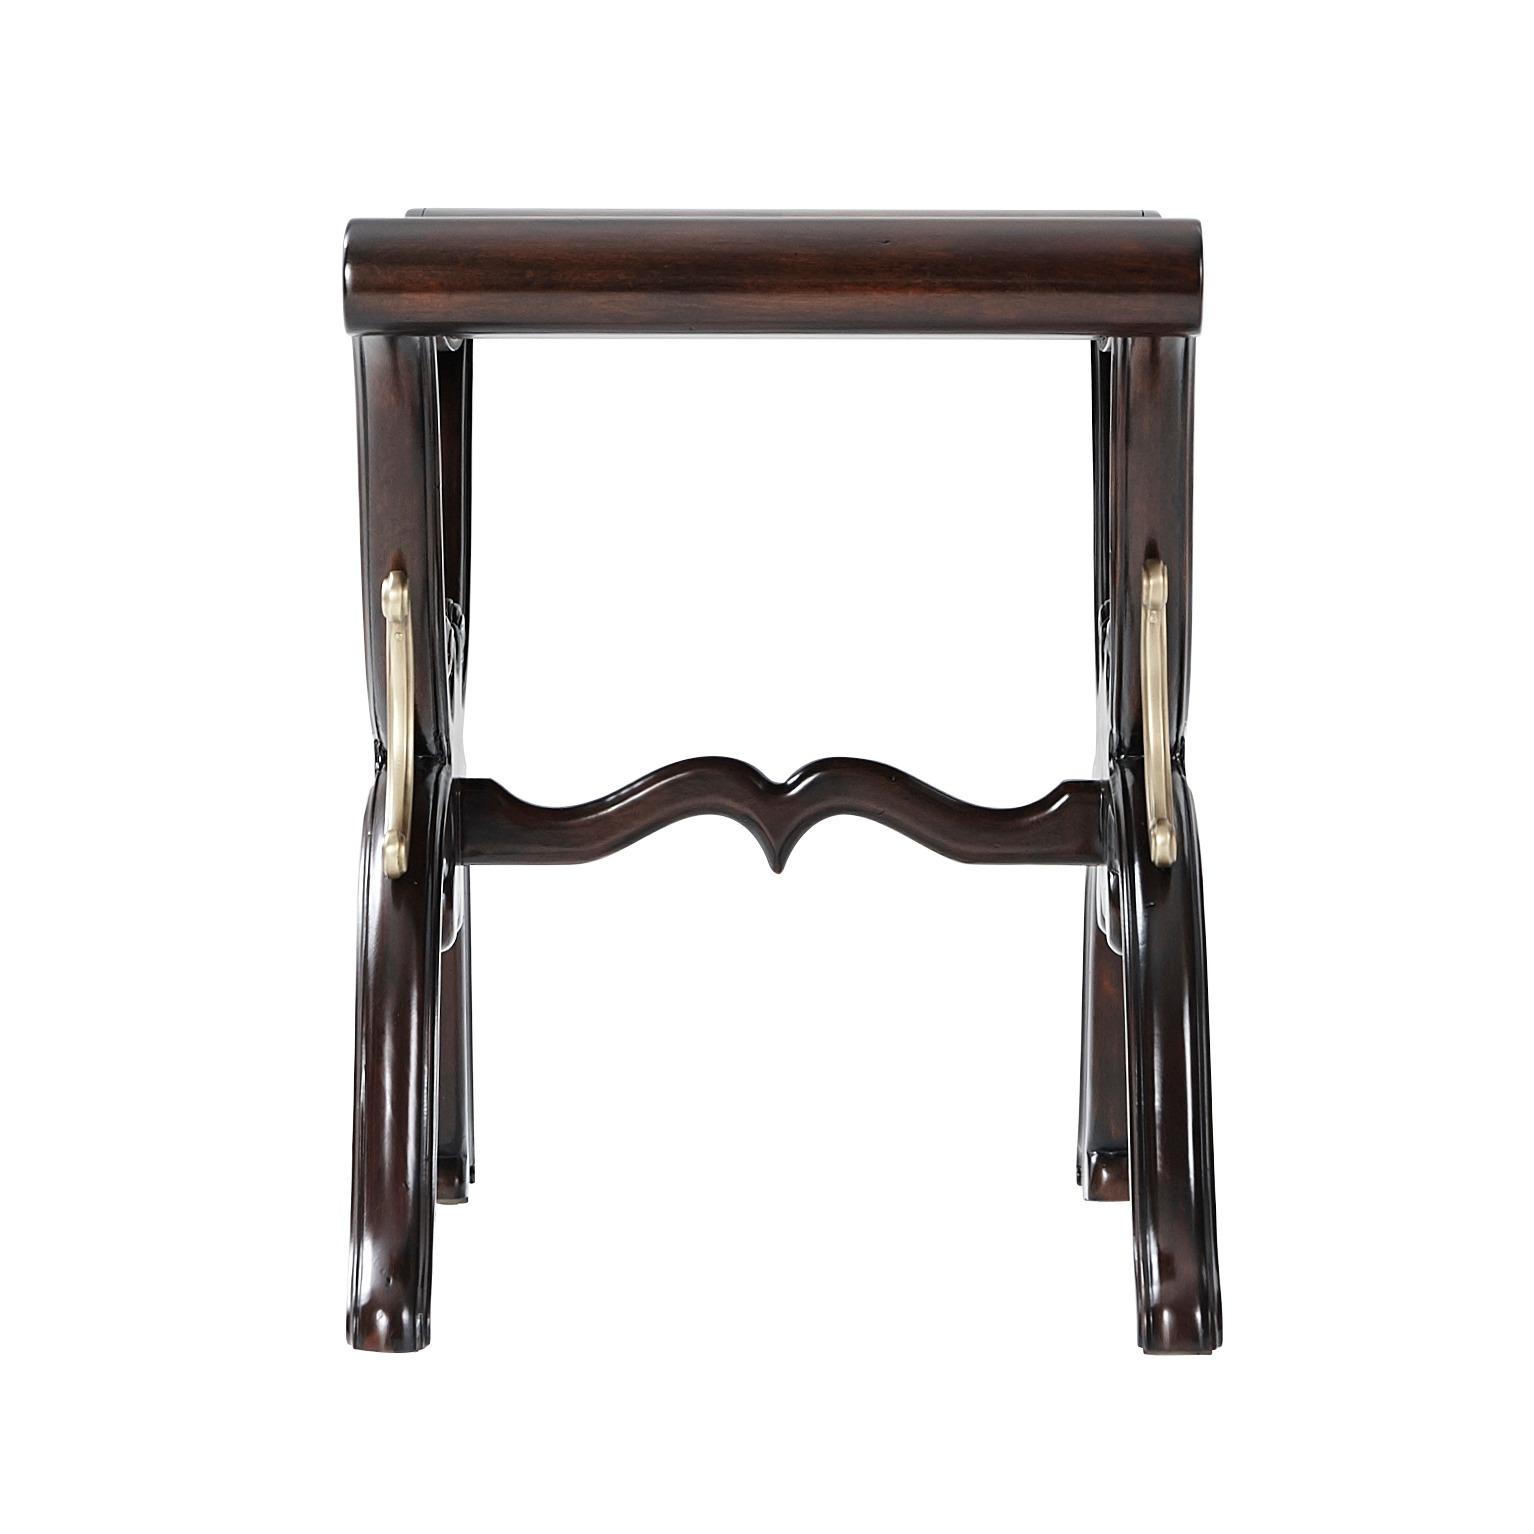 The Gillows Stool